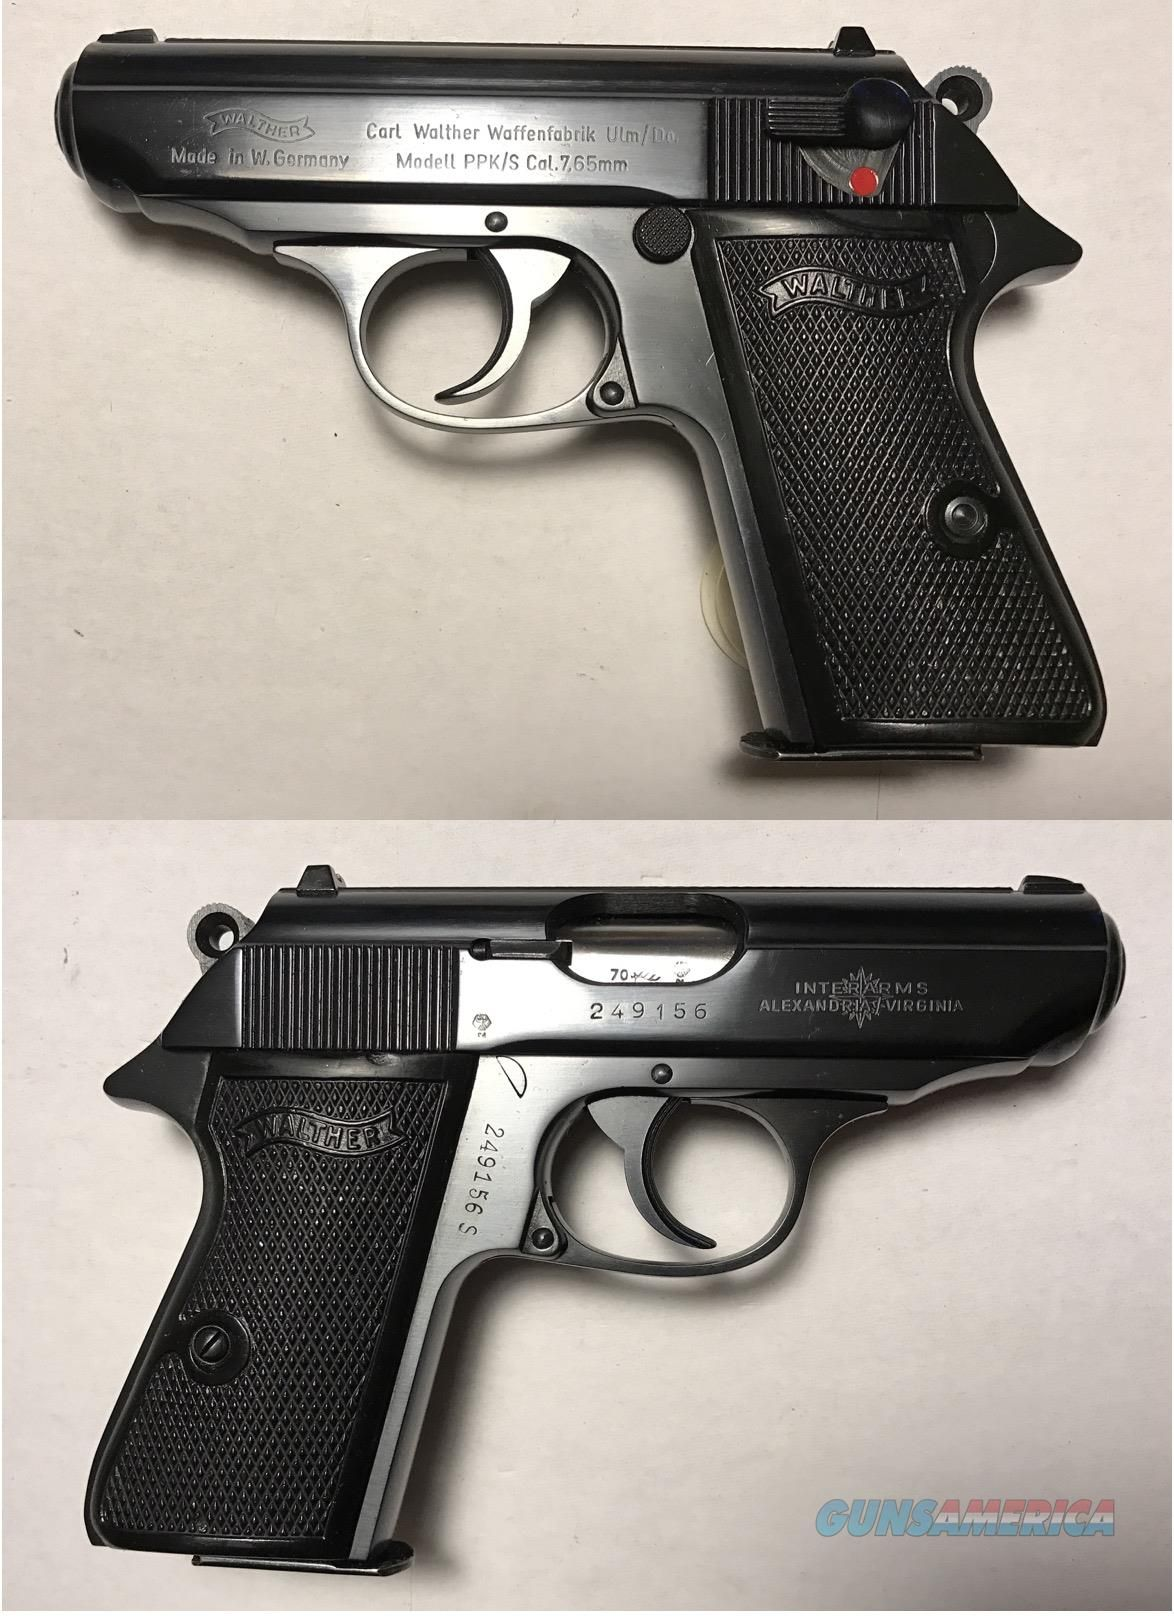 Walther P99 Silenced Survive Amp Thrive T Exploded View Of The Taurus Pt92 Af Also Sig 1911 Diagram German Ppk S 765mm 32acp Mfg 1970 Guns Pistols Post Wwii Series